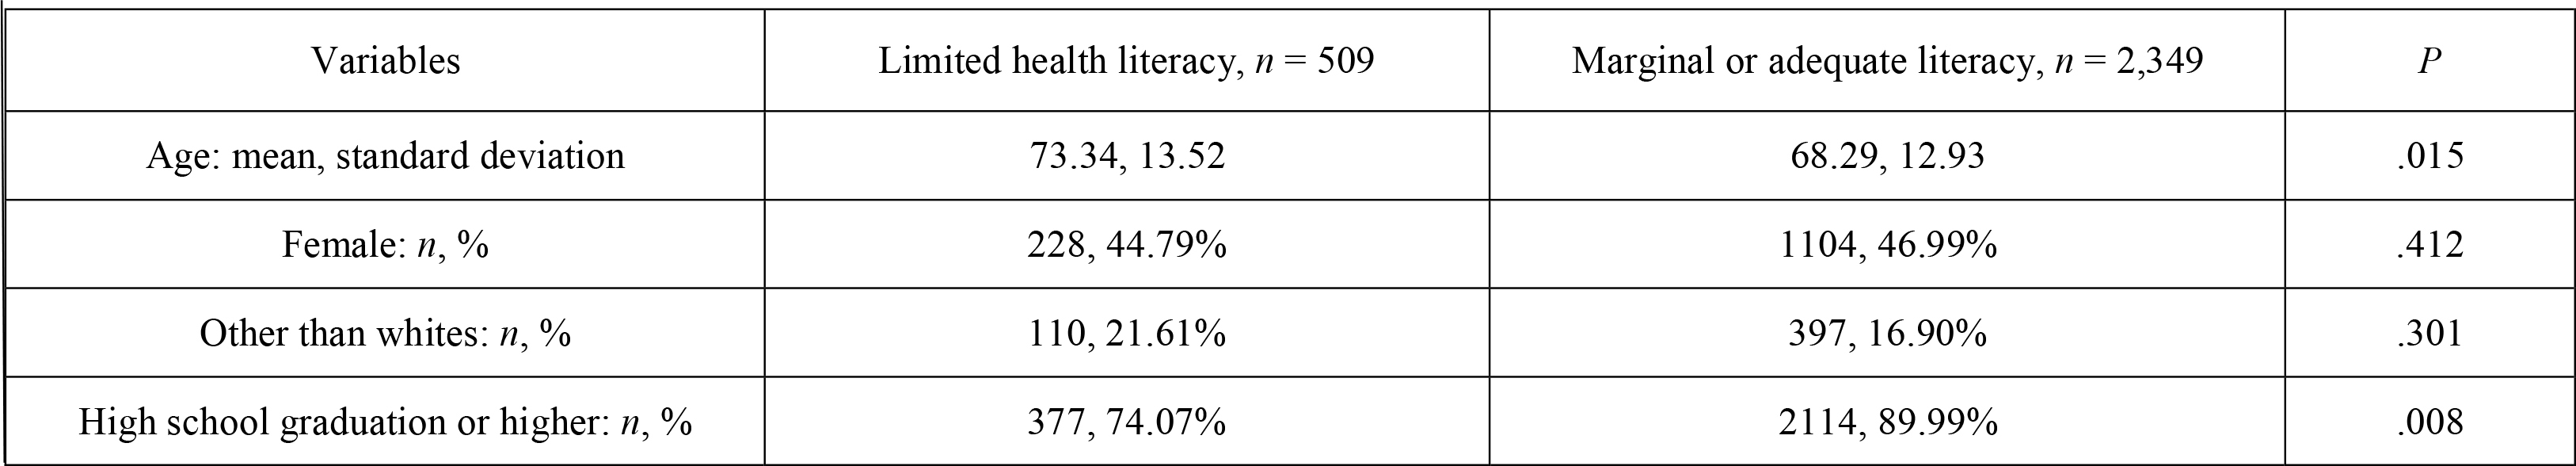 Baseline characteristics of pooled study participants by health literacy status